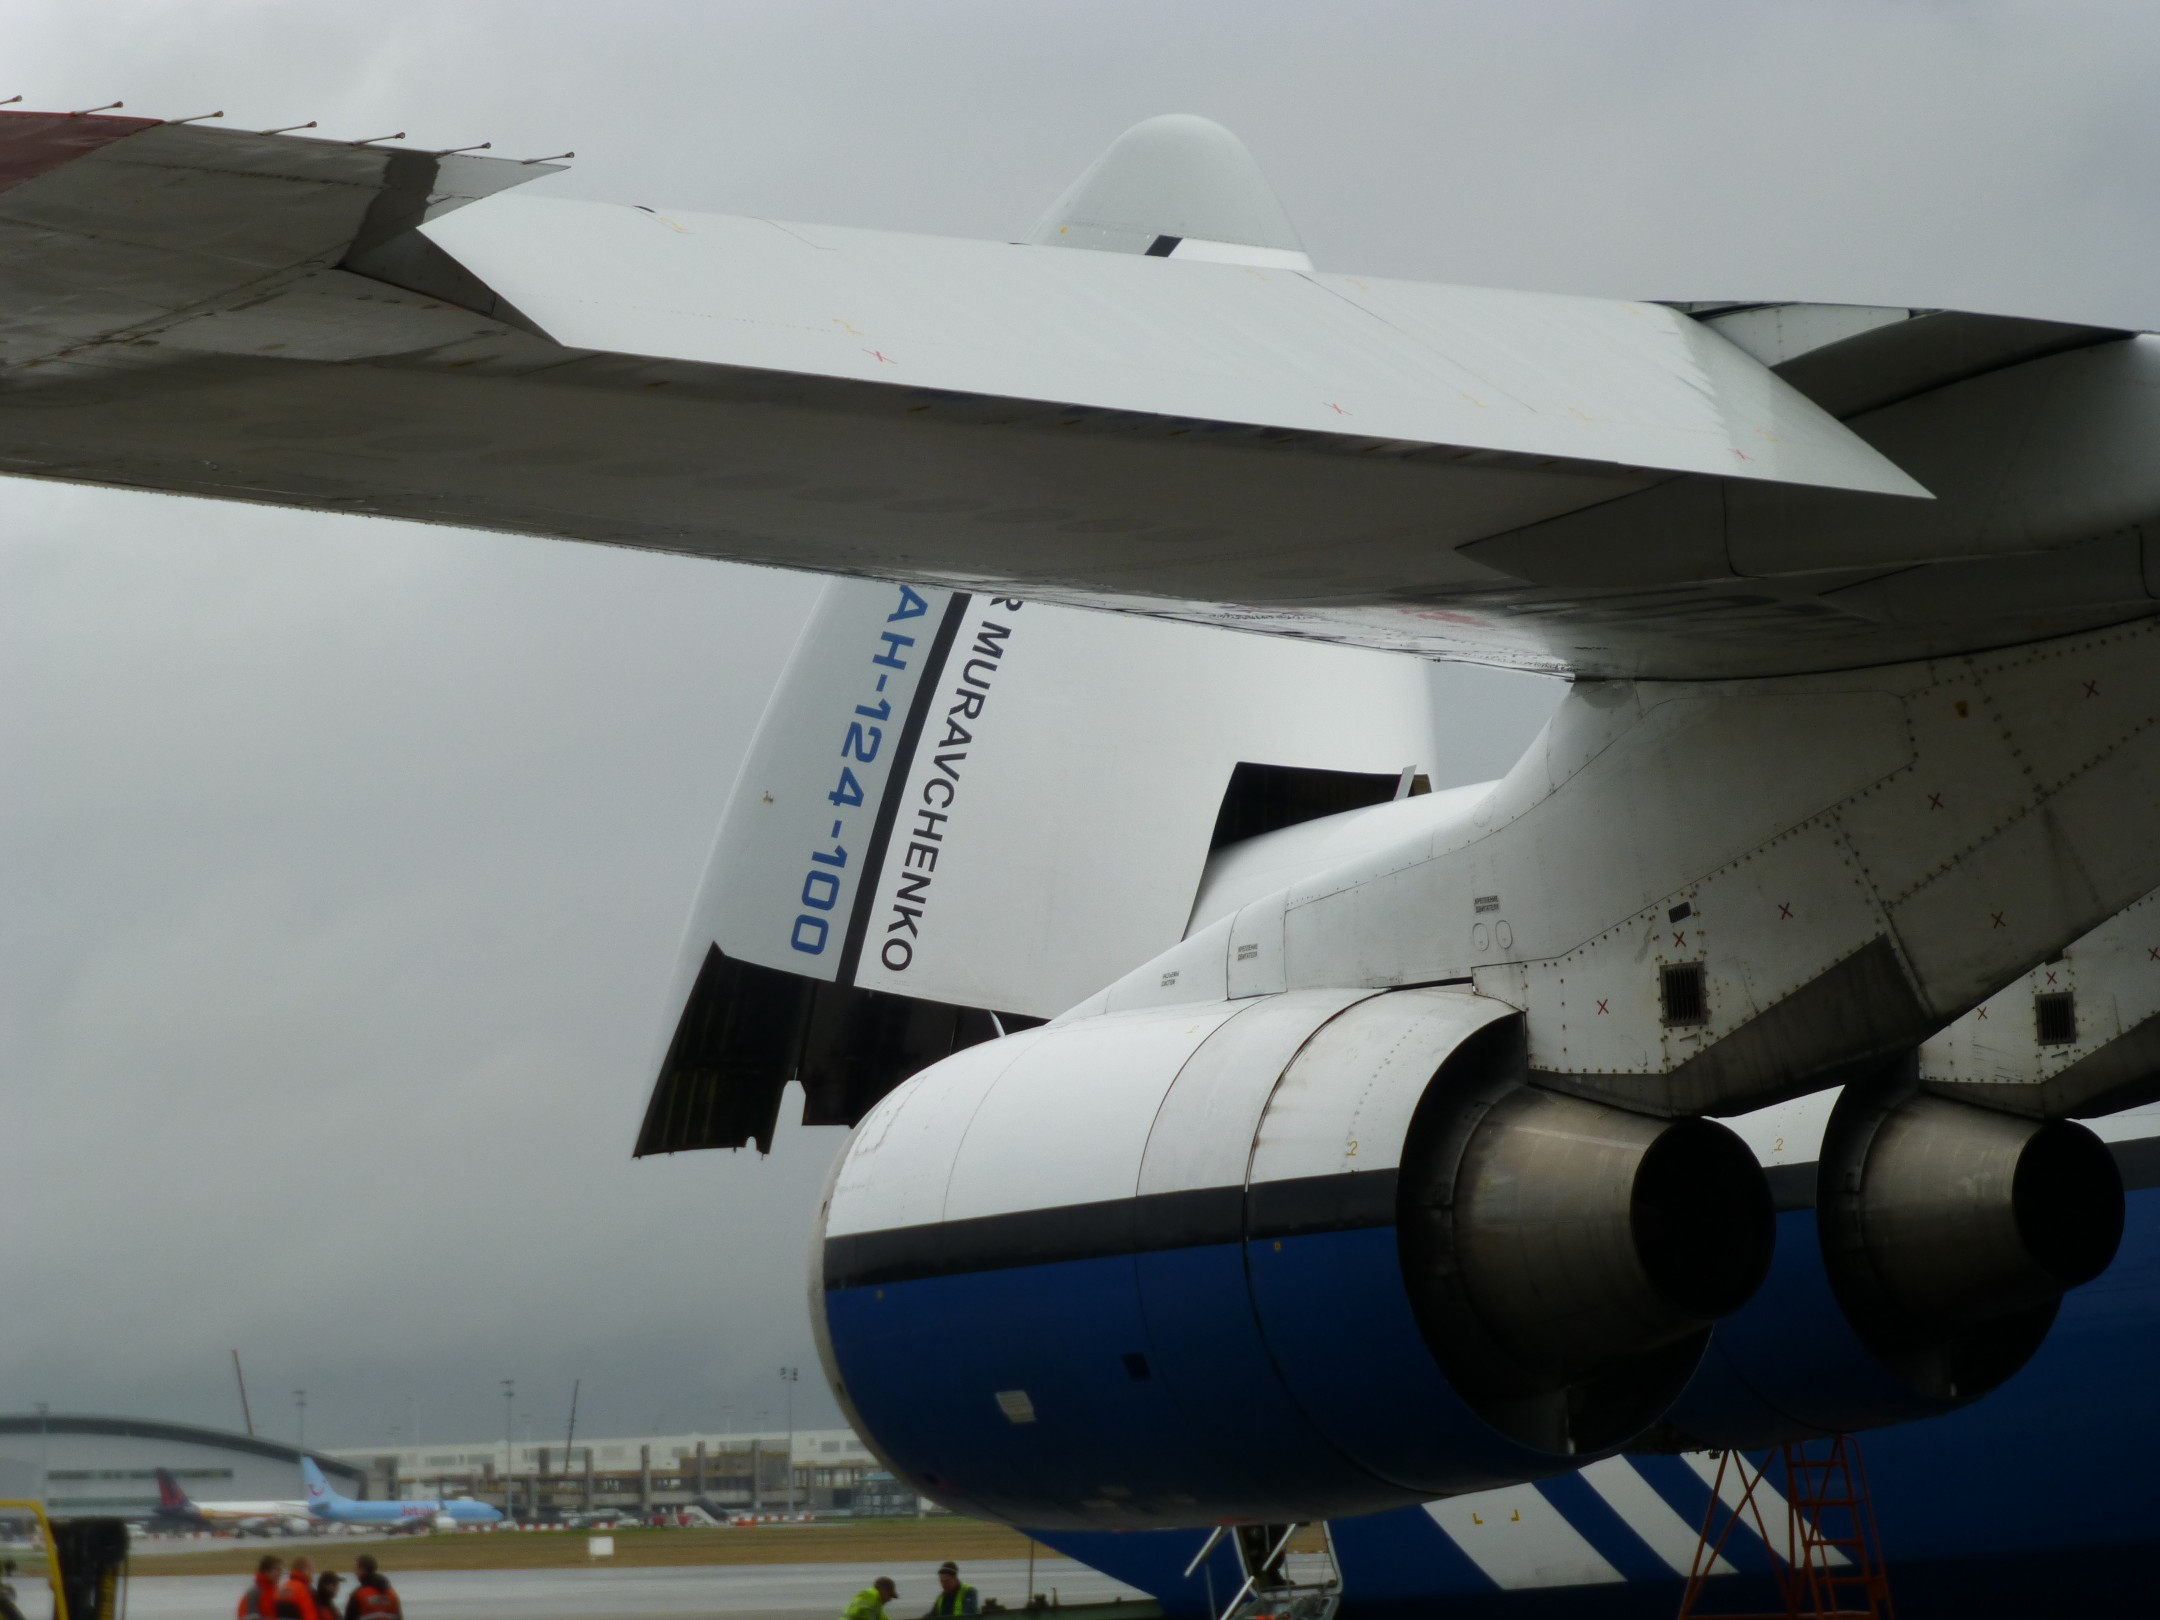 antonov-turbogenerator-maintenance-partners-031